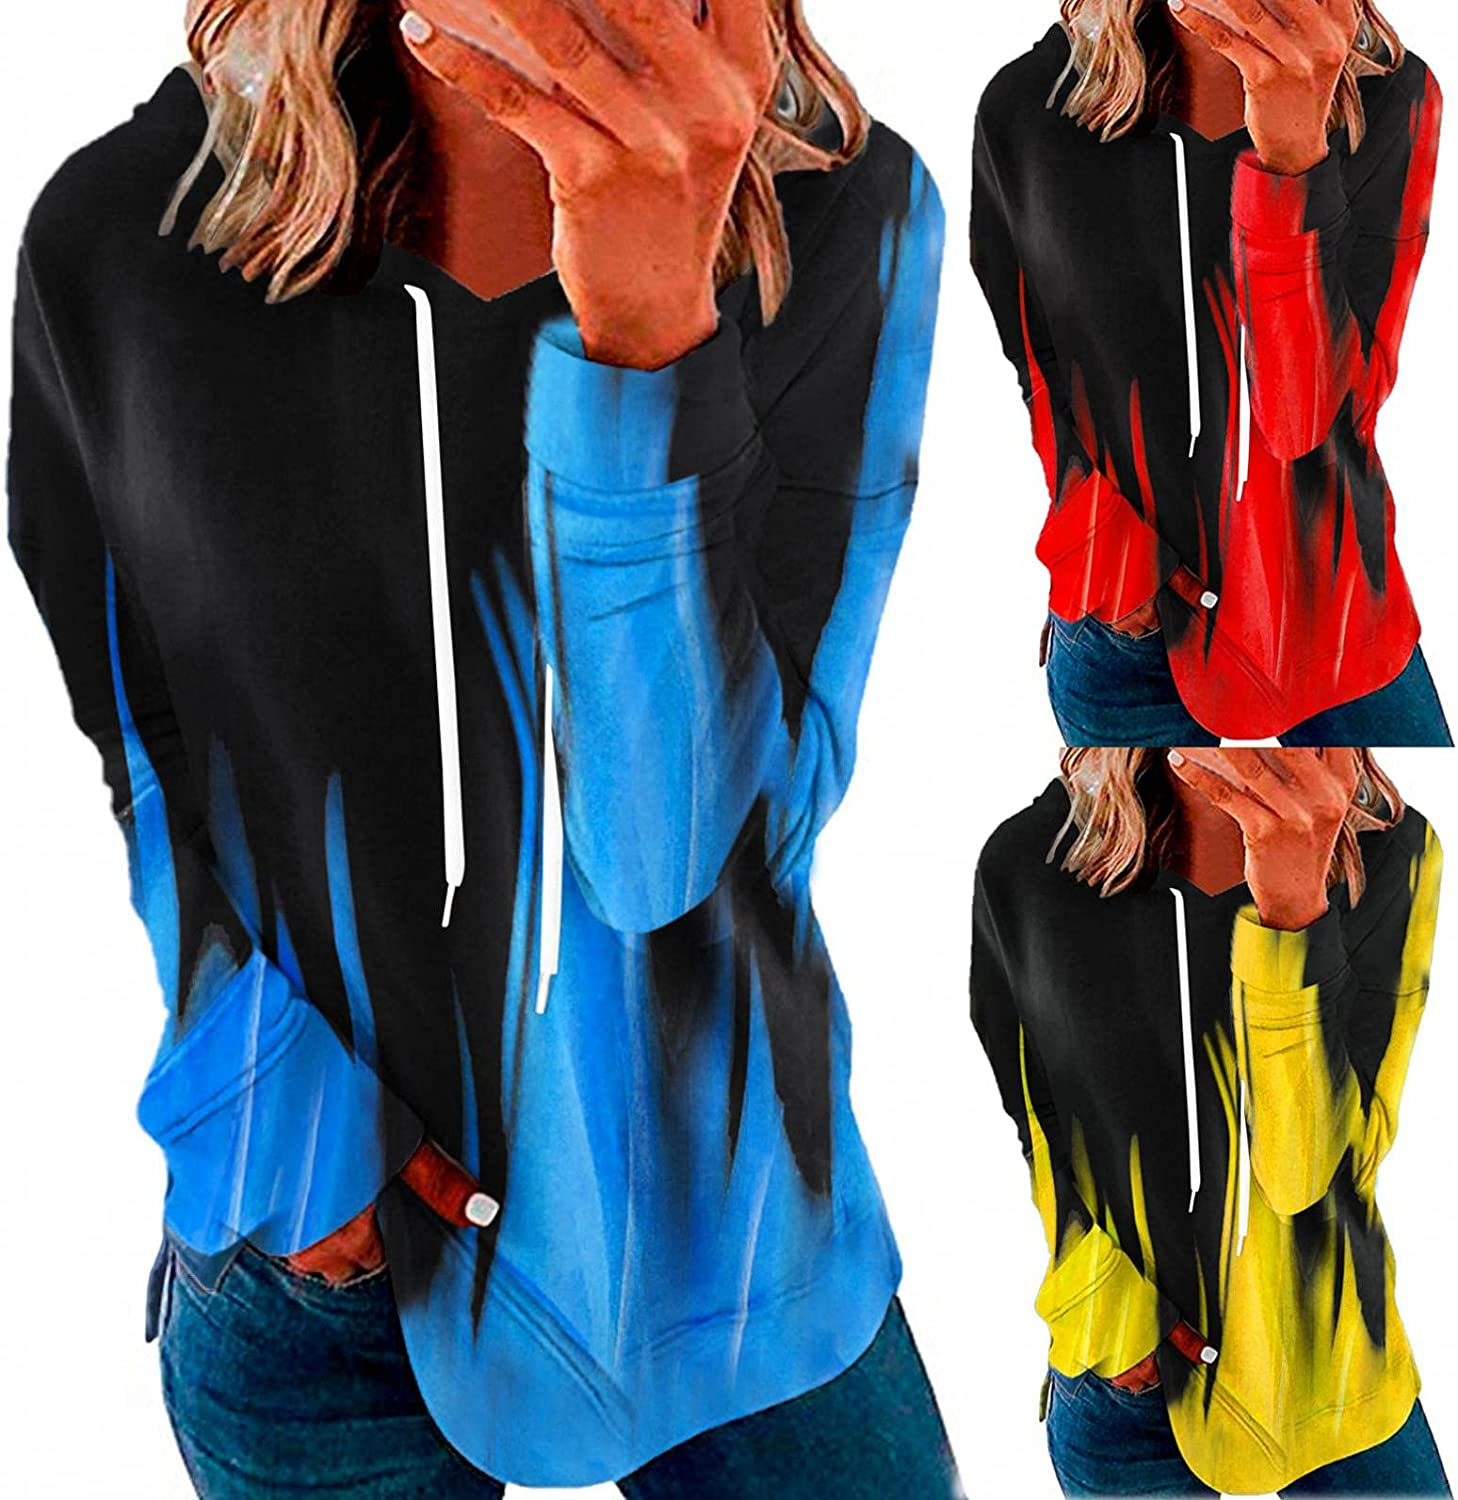 lucyouth Hoodies for Womens, Women Hoodies Casual Plus Size Long Sleeve Print Active Pullover Top Fall Tunic Sweatshirts